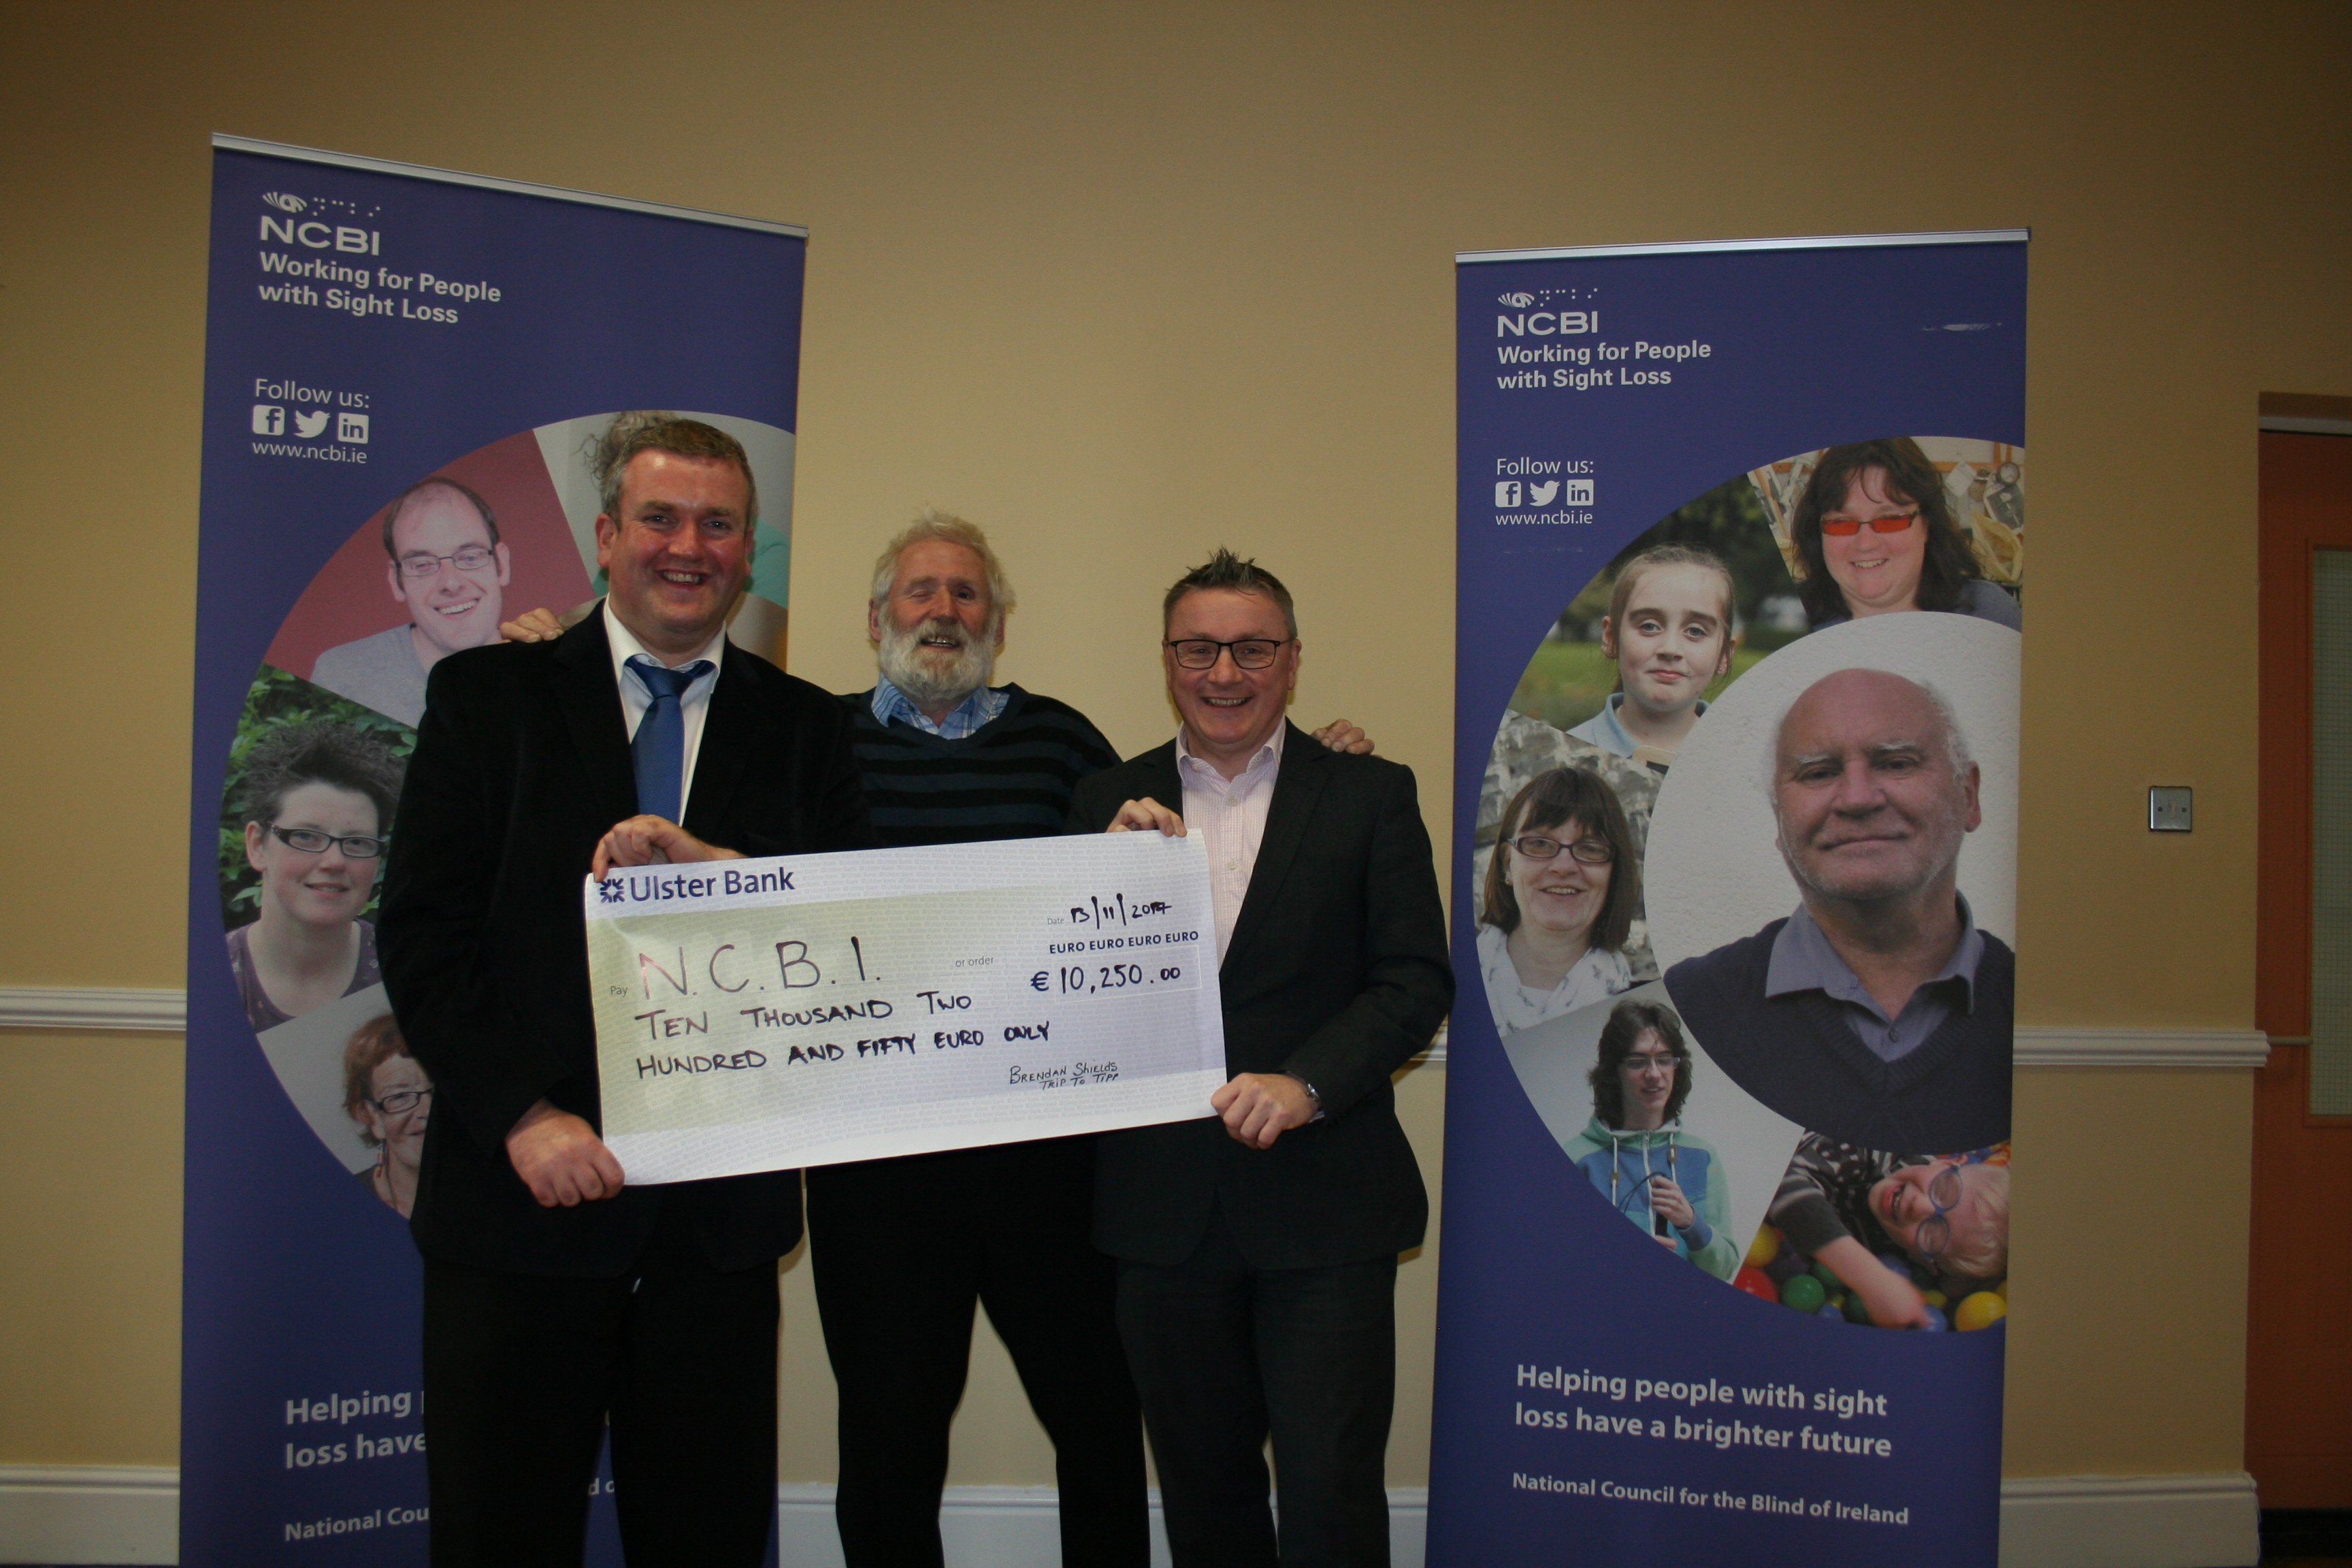 Photo is of Brendan Shields , Billy Shanahan and Chris White holding a large cheque in the NCBI offices in Drumcondra, Dublin